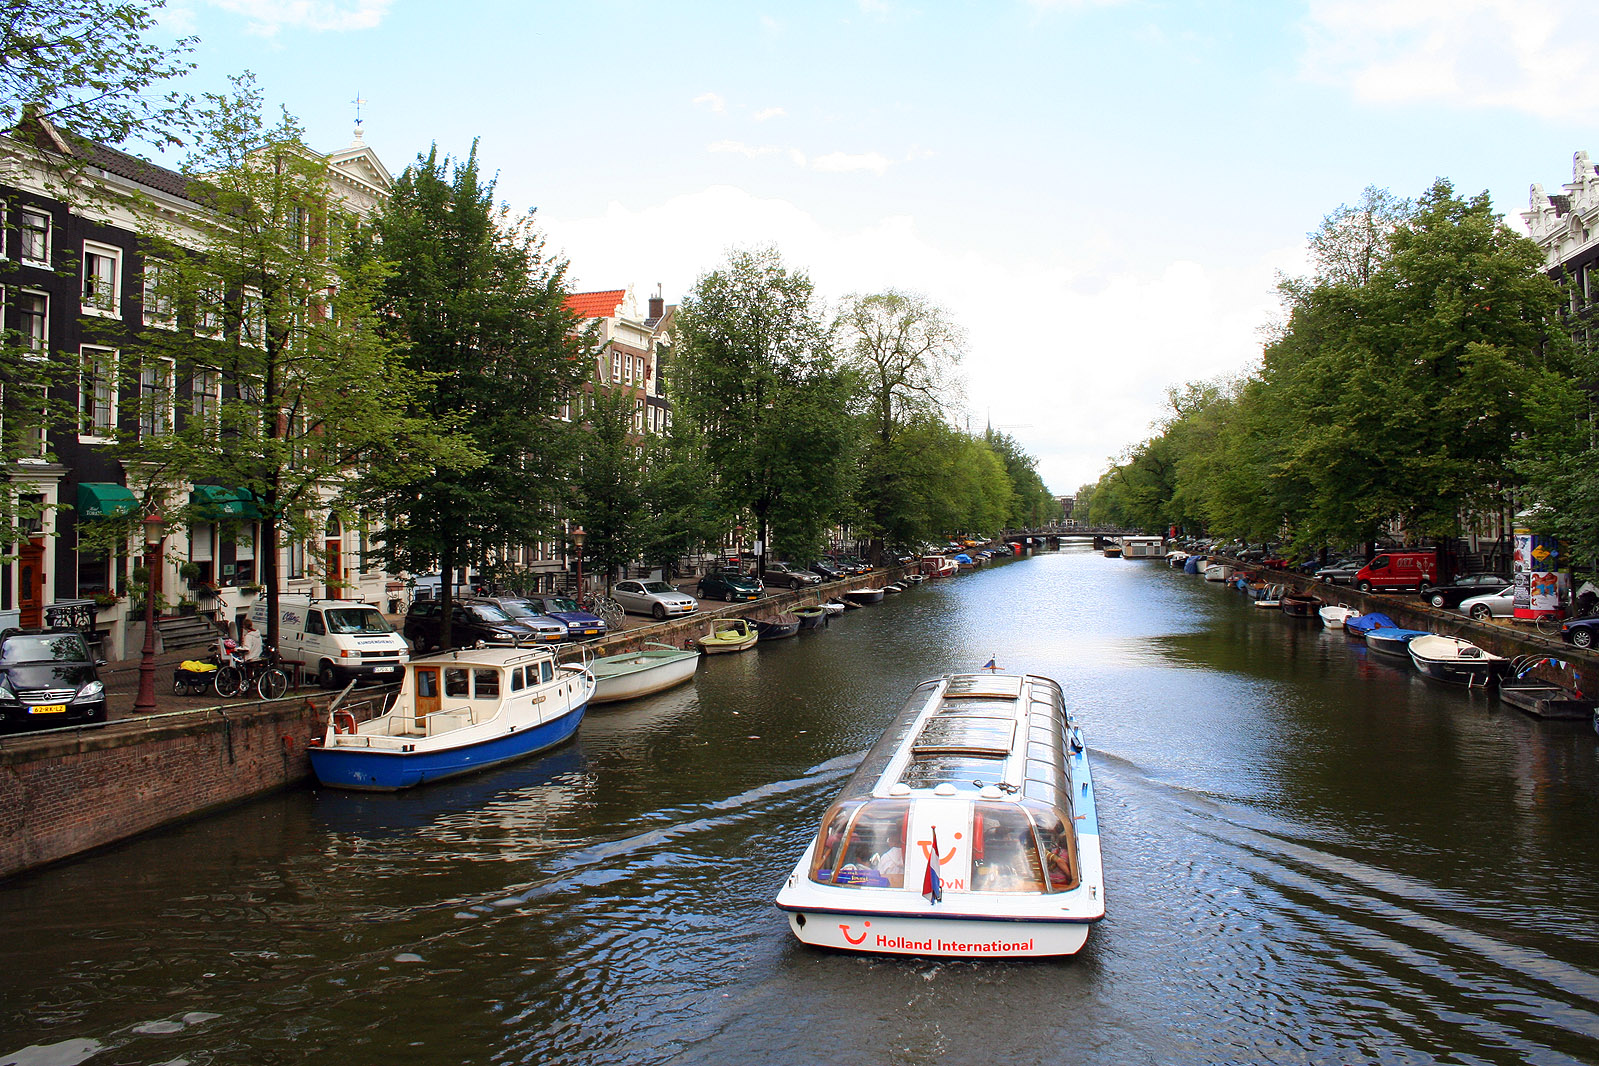 56981, Amsterdam, Boat, Canal, Enjoy, HQ Photo